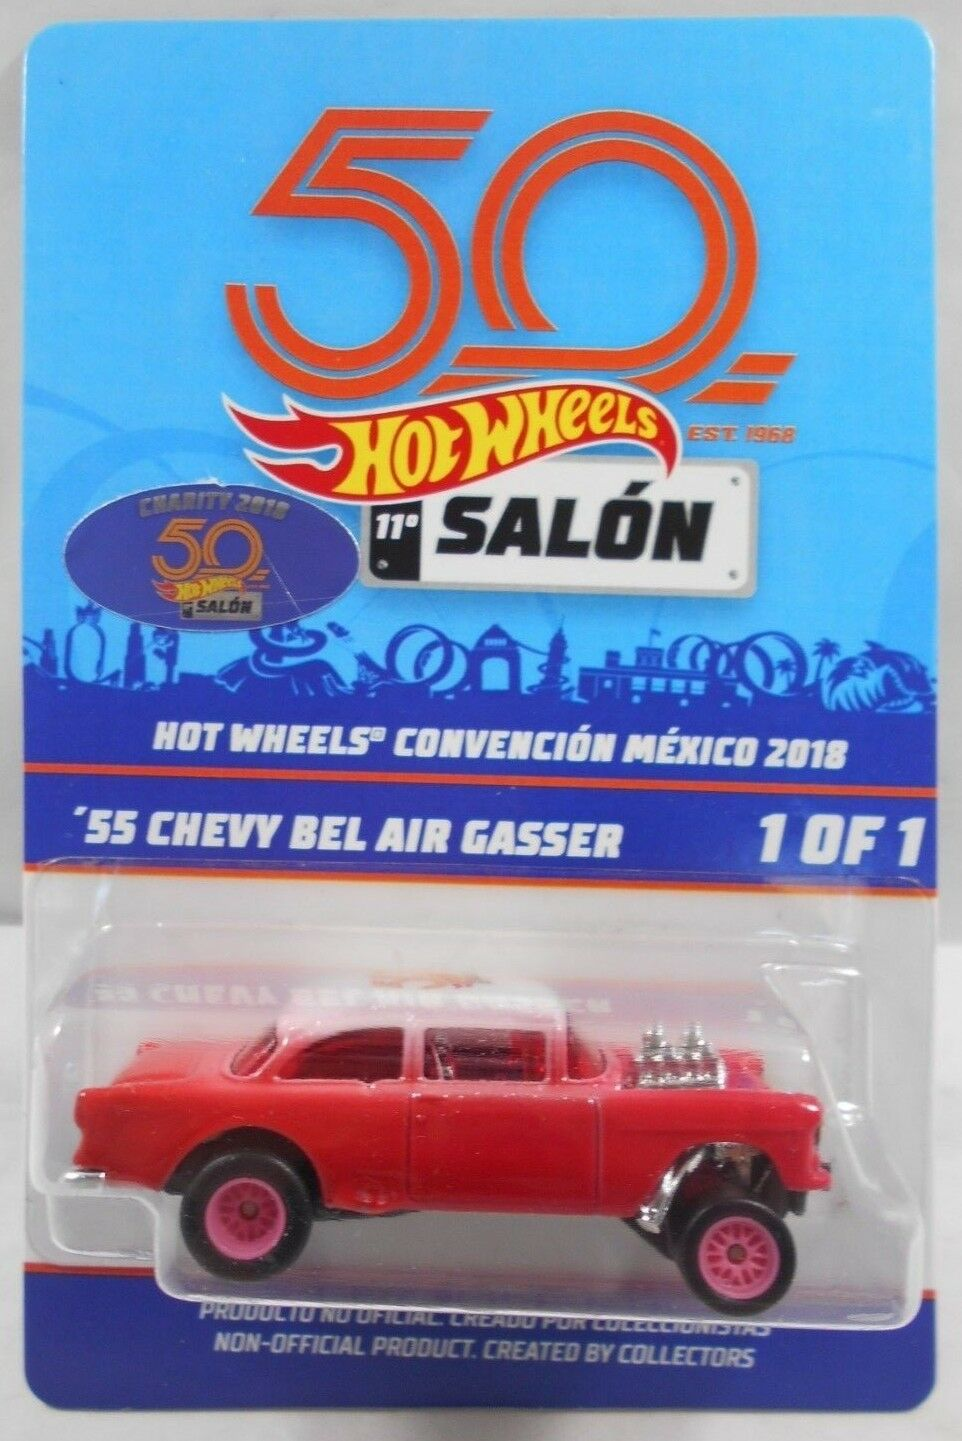 2018 HOT WHEELS 11a MEXICO CONVENTION 1 OF 1 *´55 CHEVY BEL AIR GASSER* CHARITY